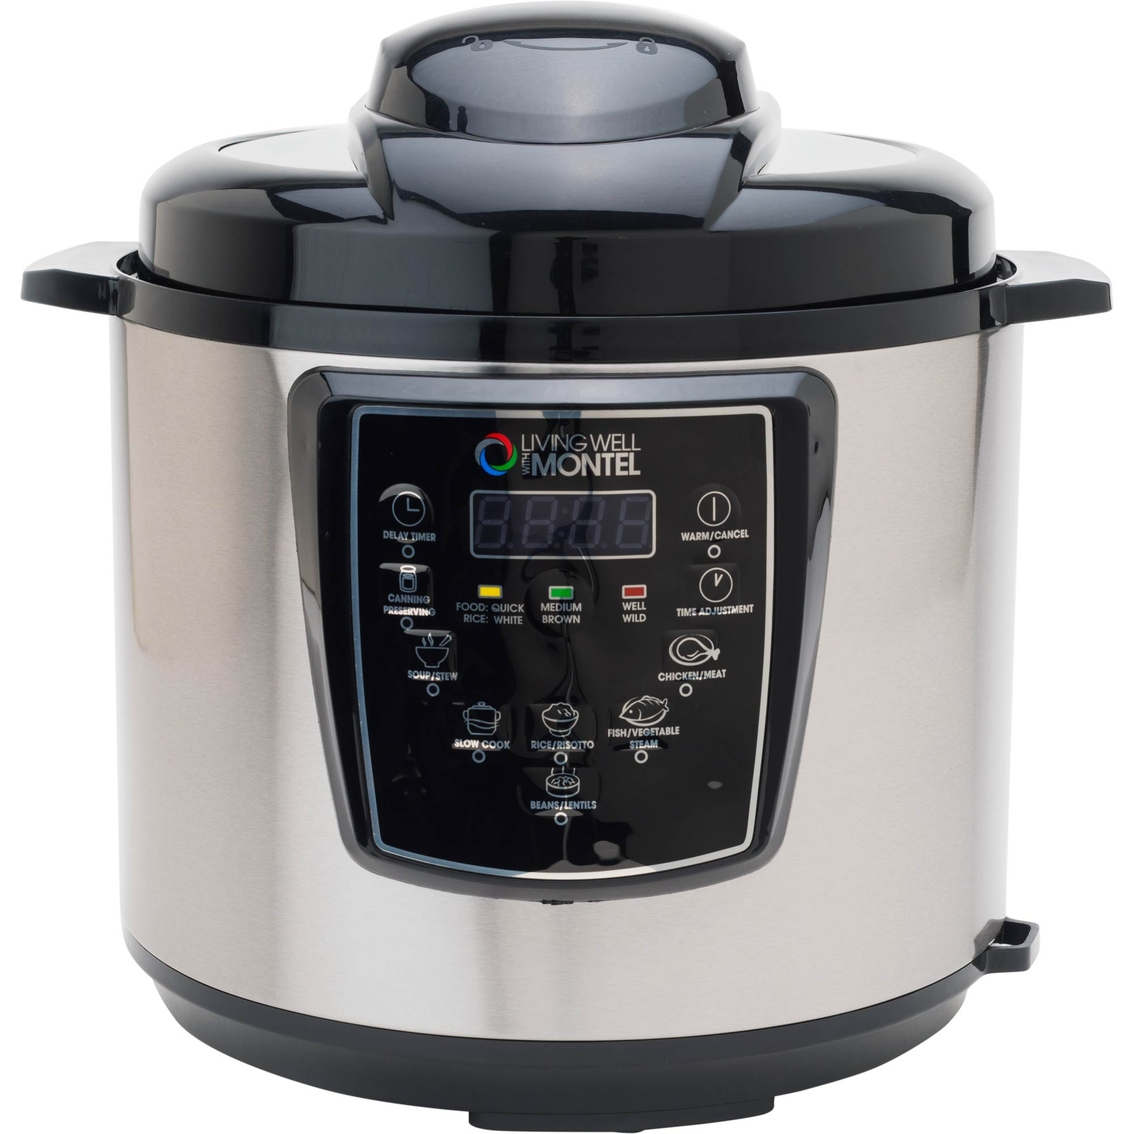 Living Well With Montel 6 Qt. Pressure Cooker | Pressure Cookers ...